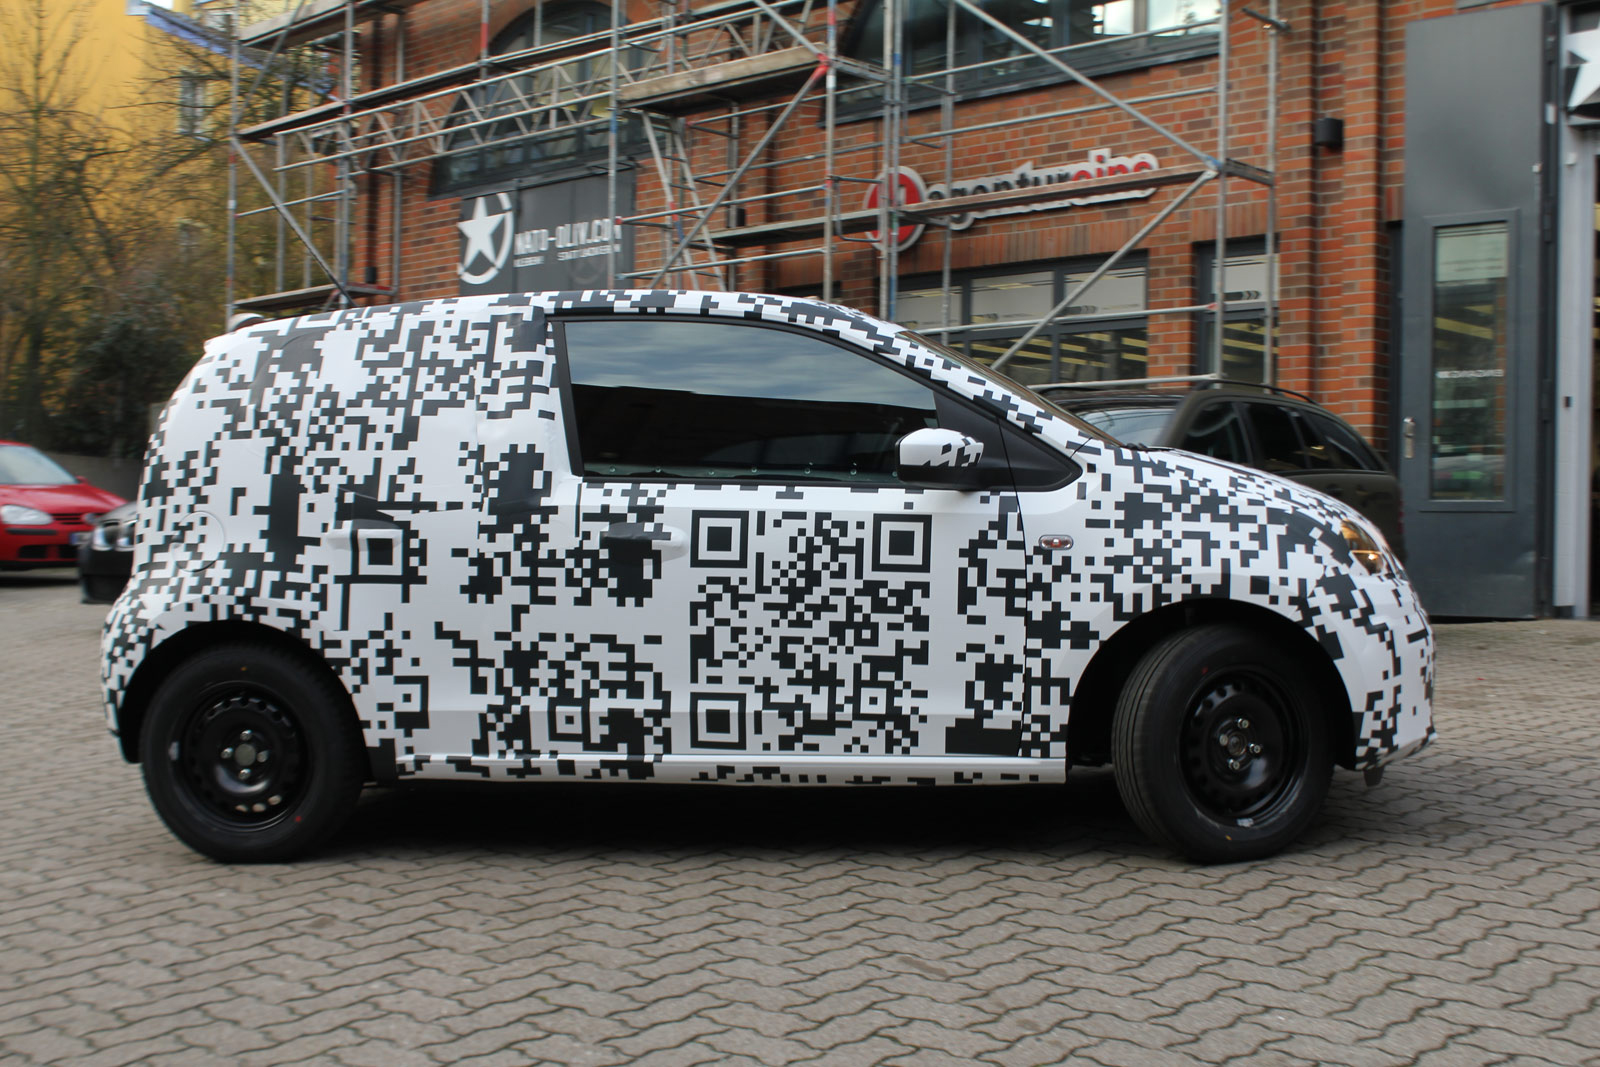 VW_UP_QR_CODE_3D_DIGITALDRUCK_ERLKOENIG_99